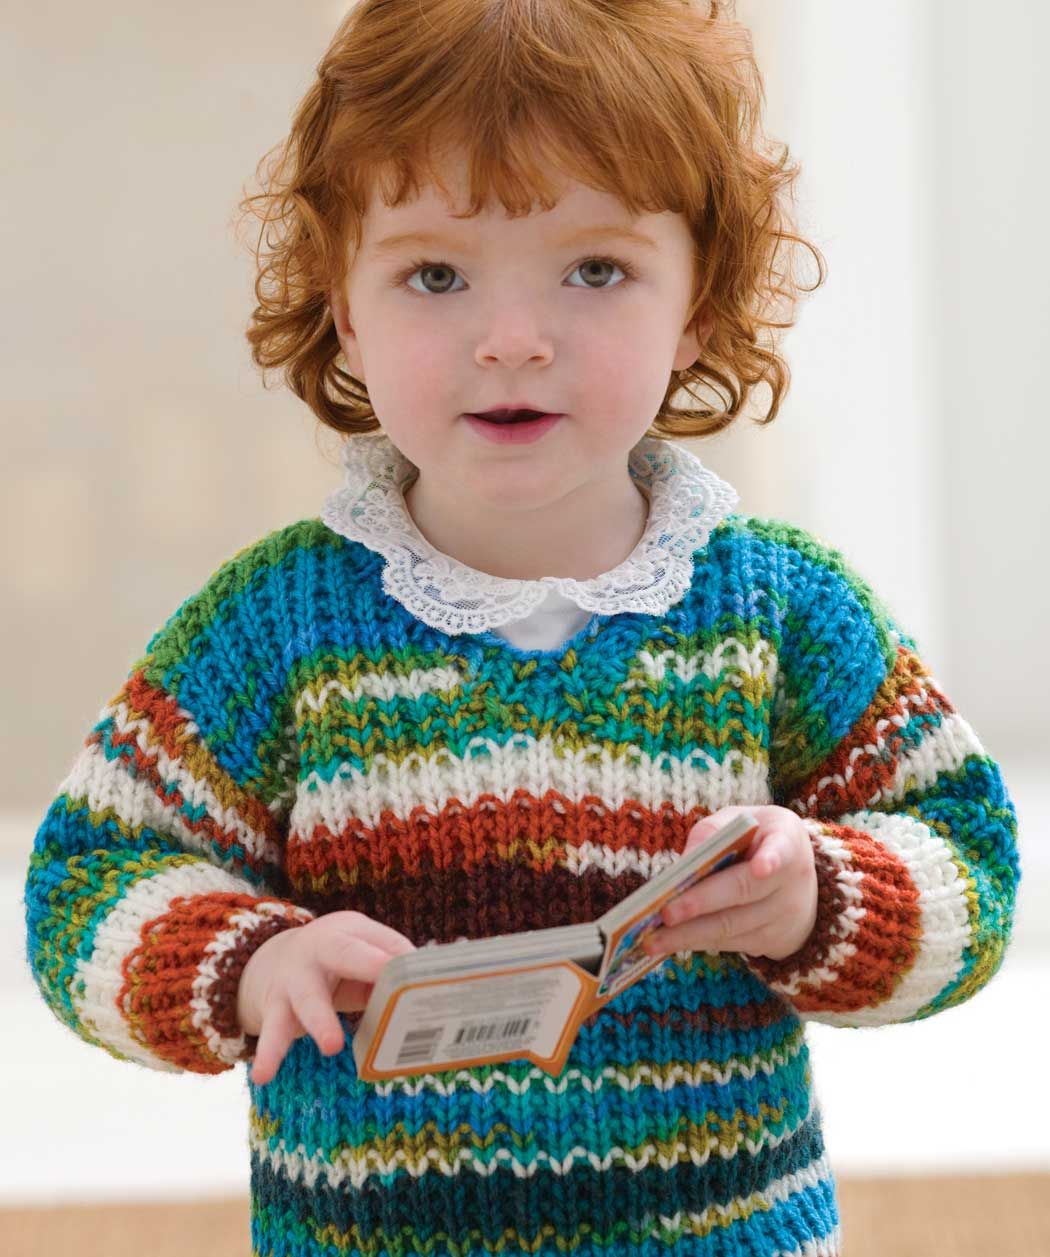 Will be my next project baby sweater redheartyarns knitting free knitting bankloansurffo Choice Image